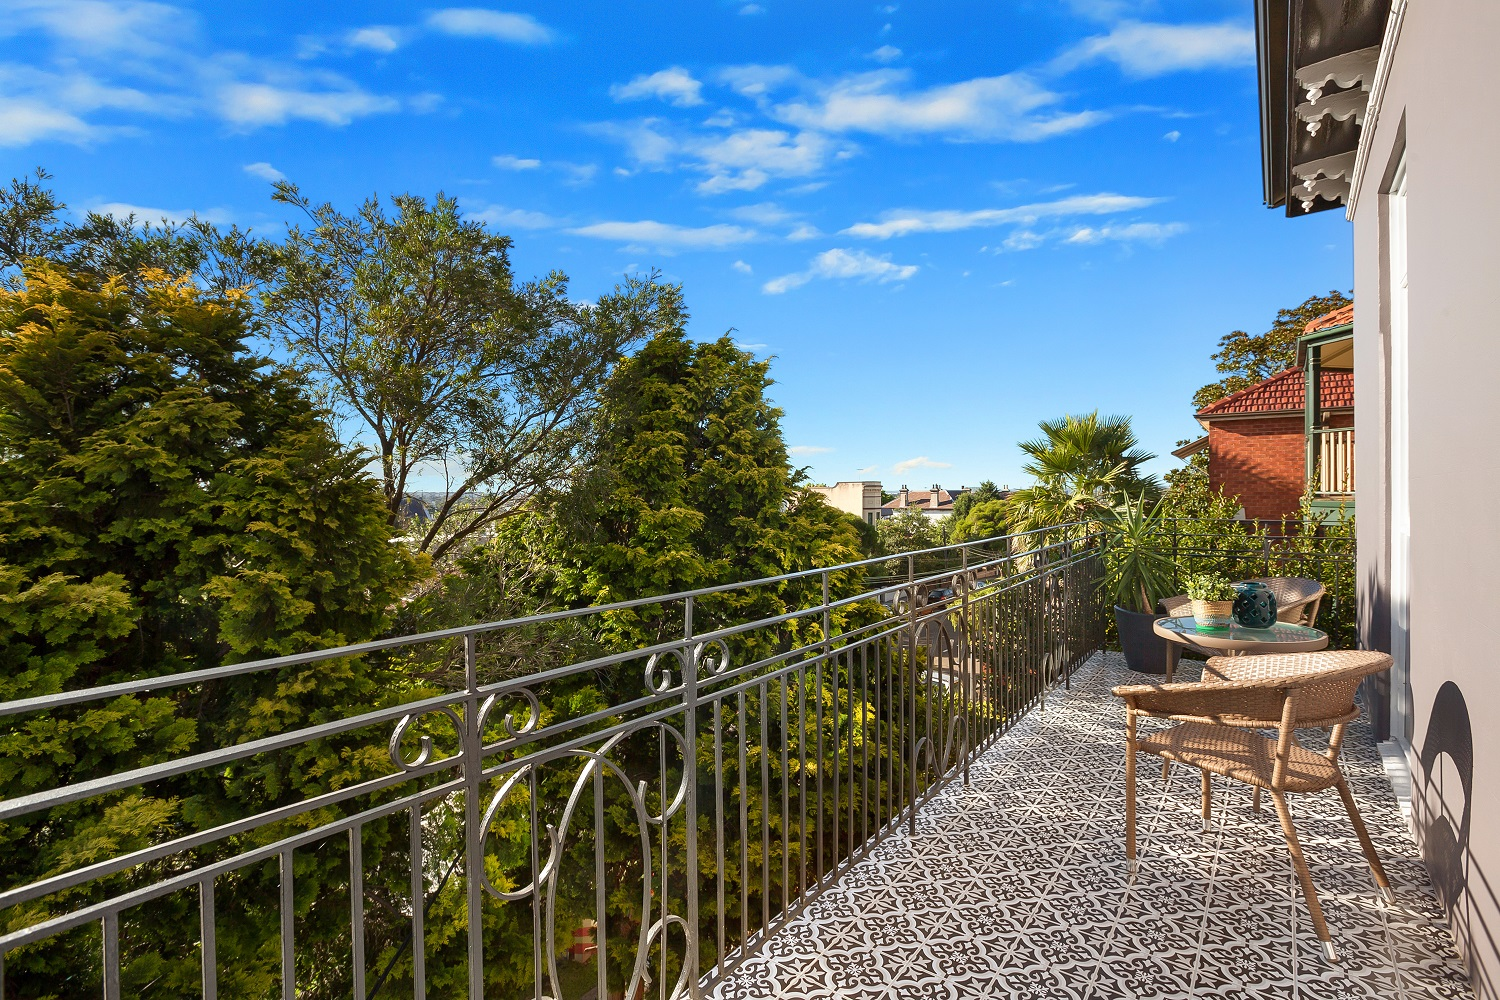 Middleton-St-2-24-Petersham-Balcony resize.jpg